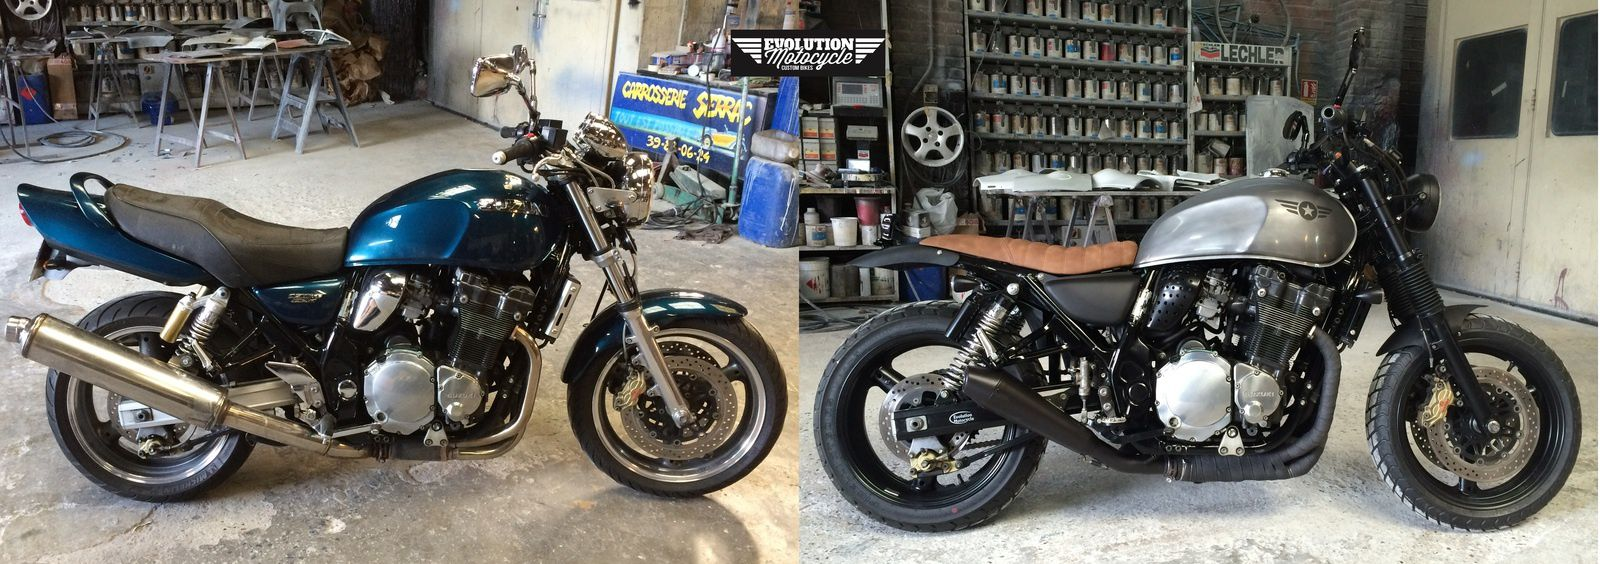 Transformations Avant Apr 233 S Evolution Motocycle